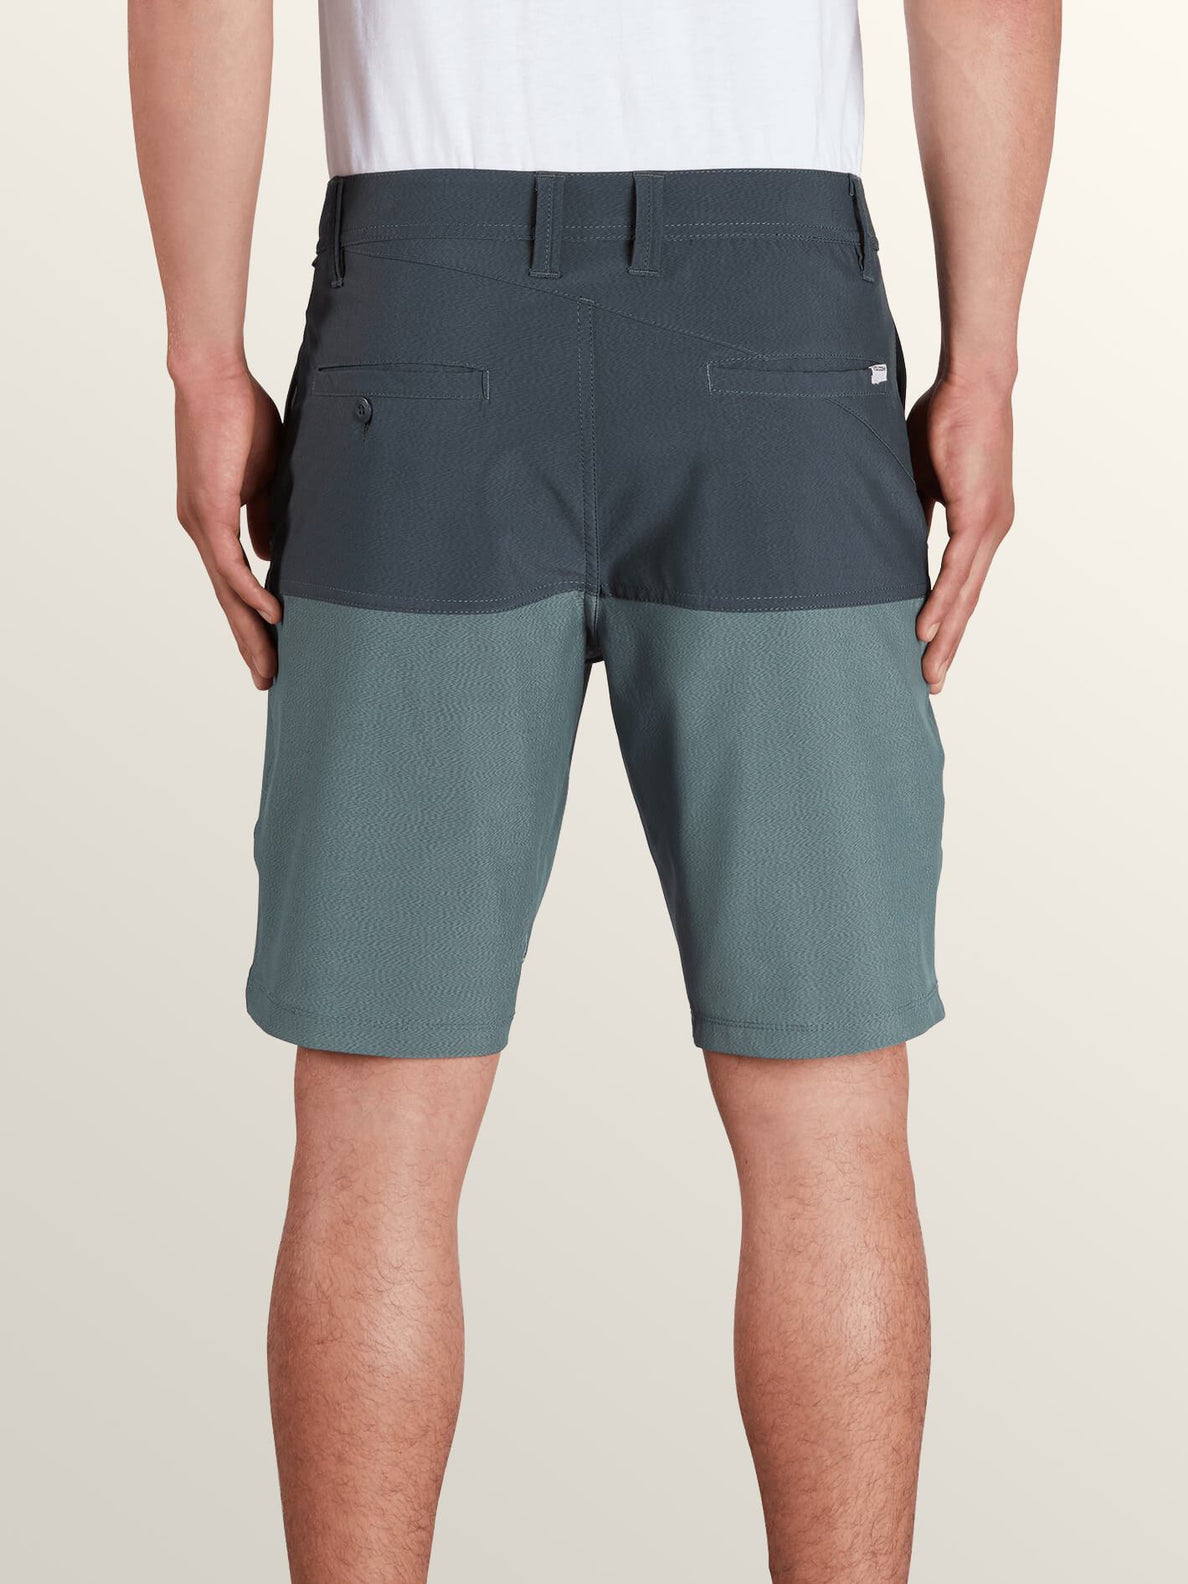 Surf 'N Turf Hybrid Block Hybrid Shorts In Lead, Alternate View